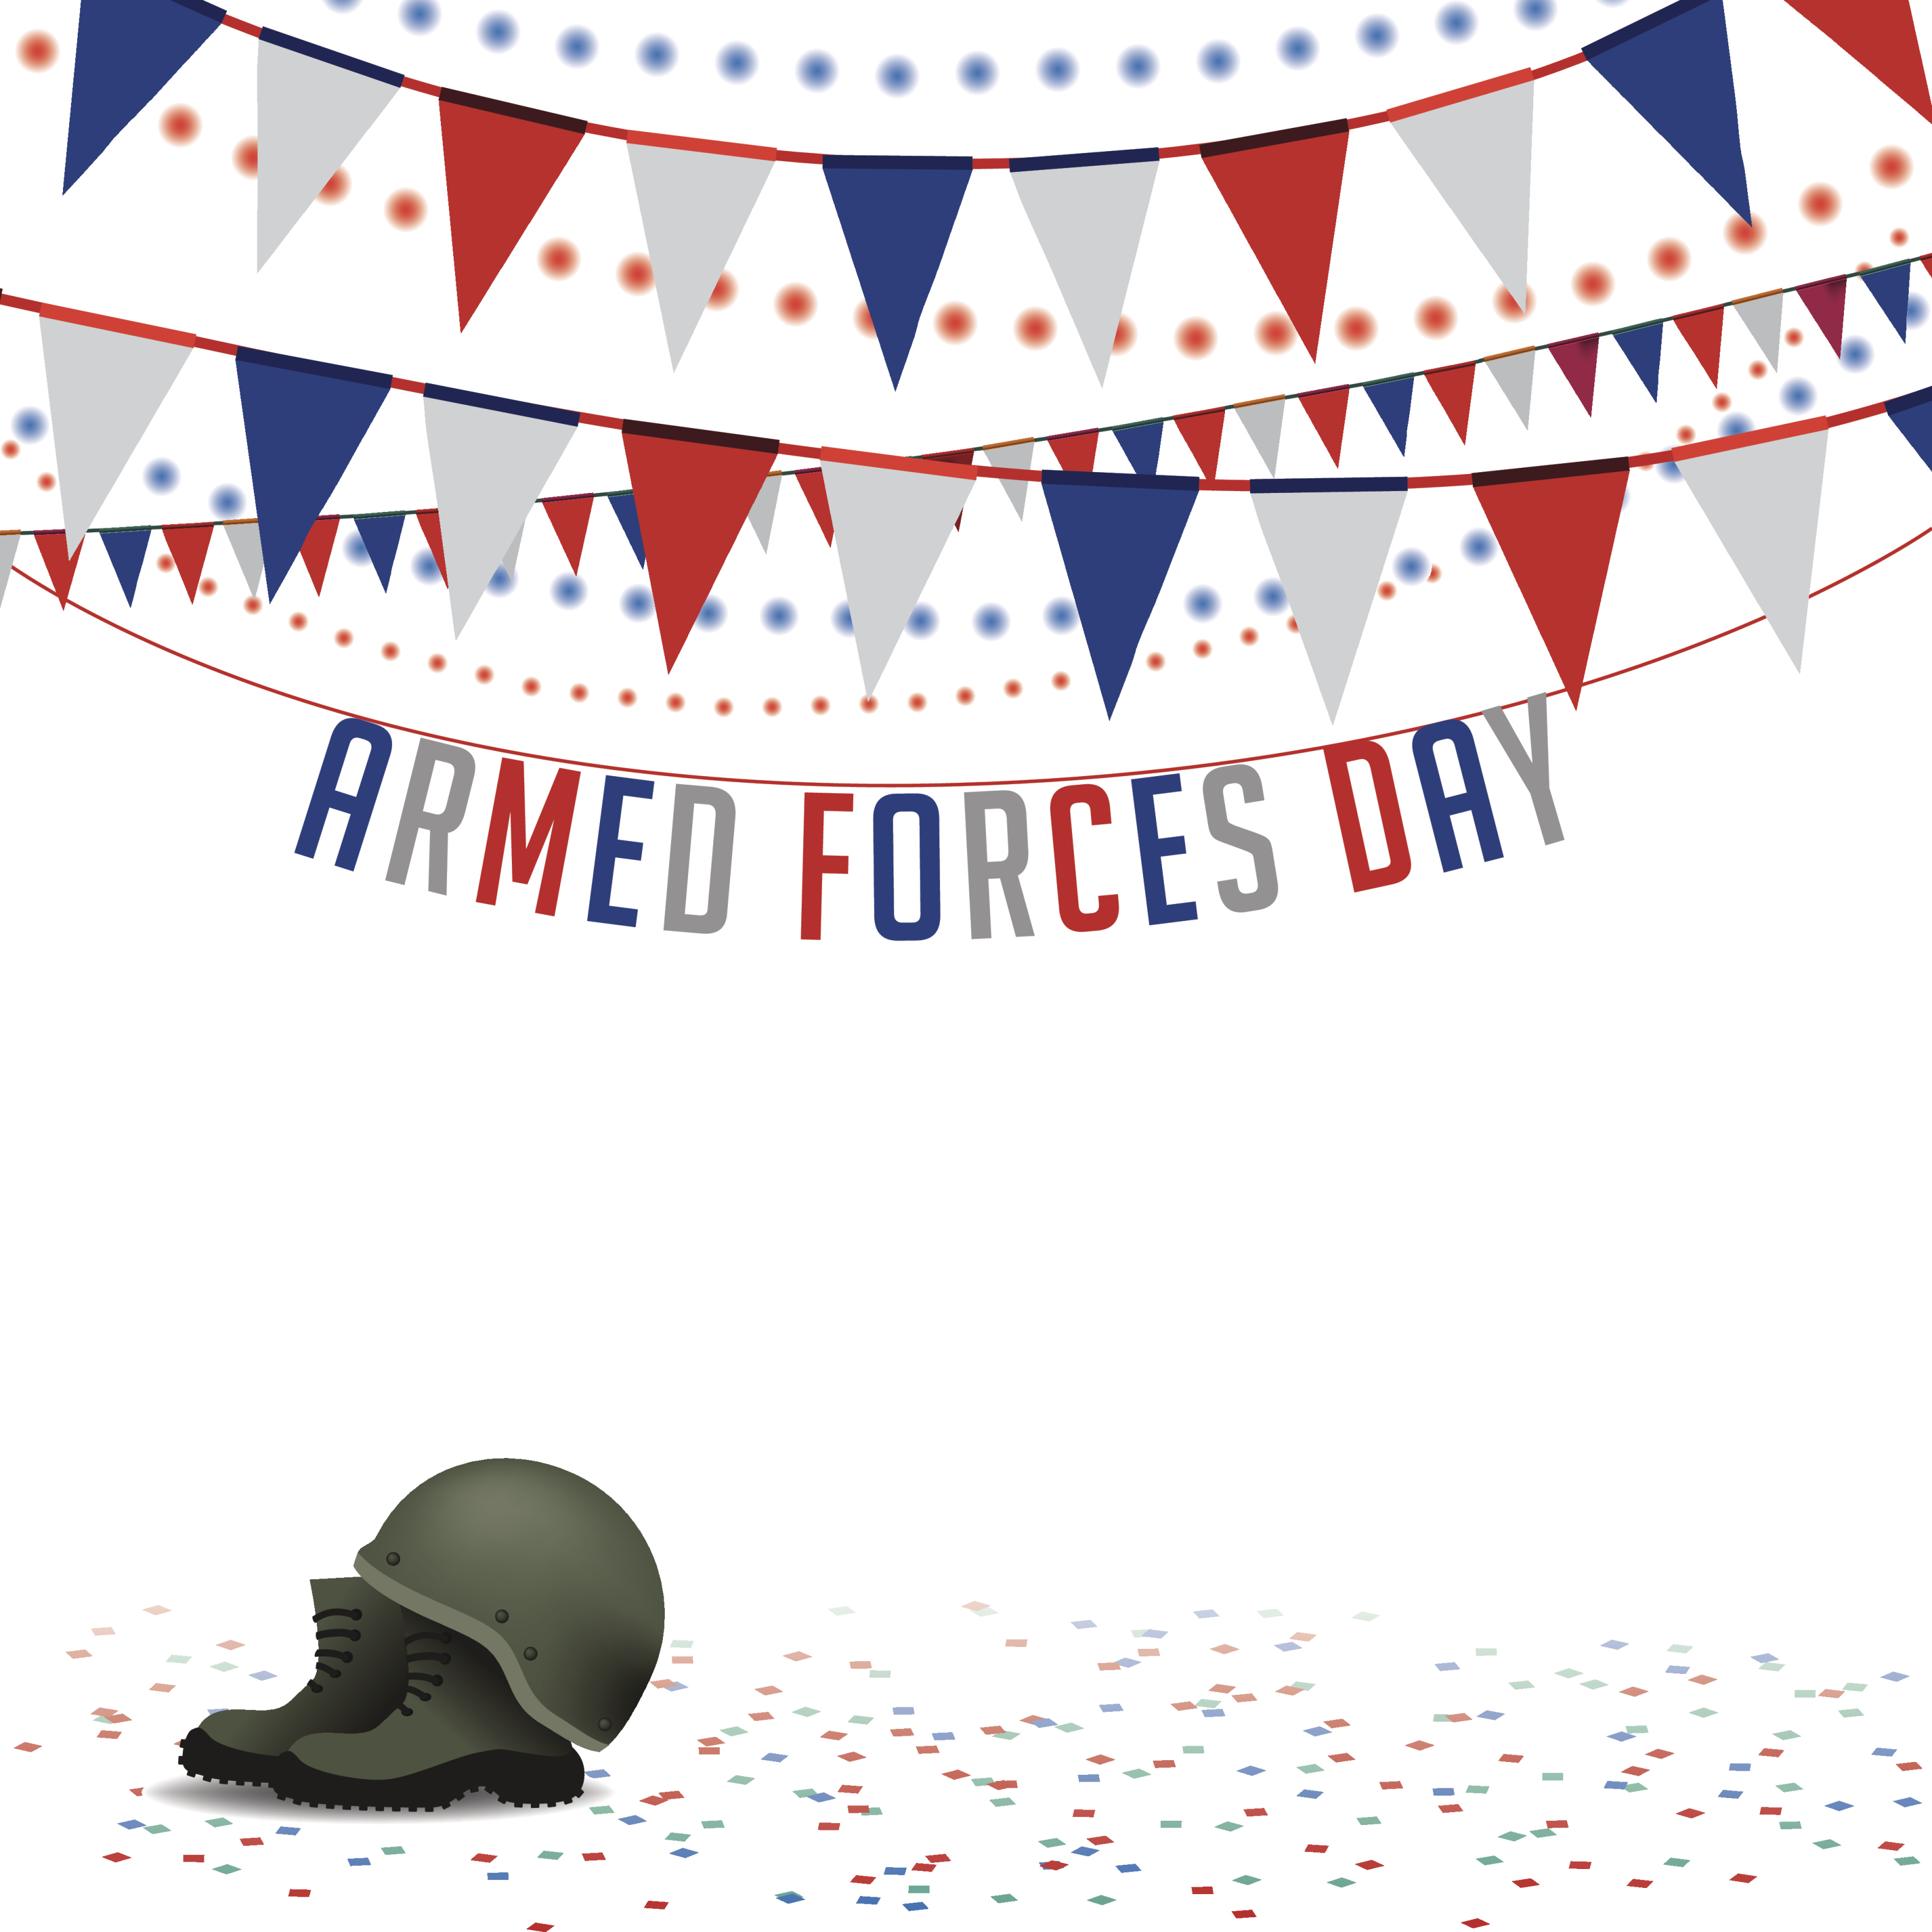 armed forces day - photo #36